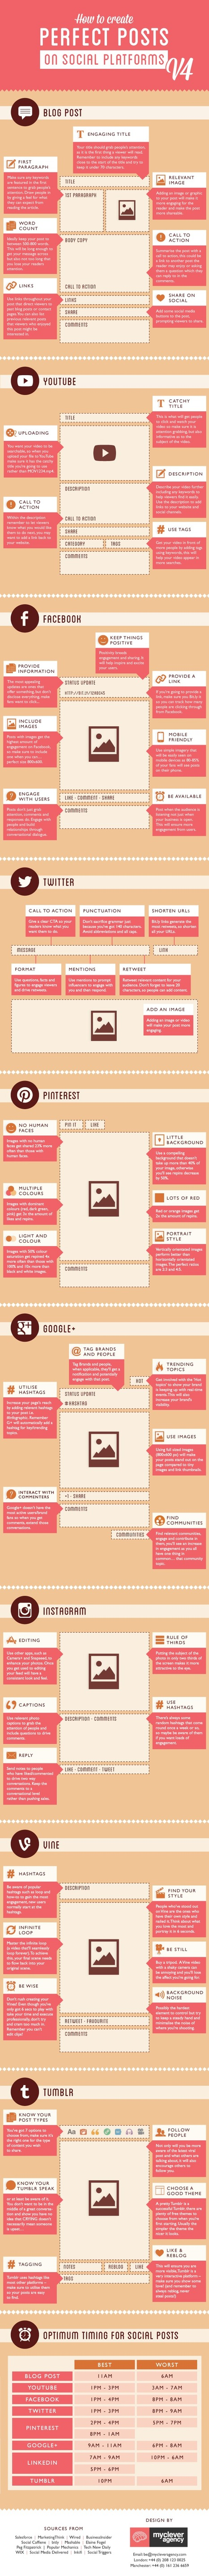 The Art of Creating Perfect Social Media Posts - infographic | social media infographics and typography | Scoop.it